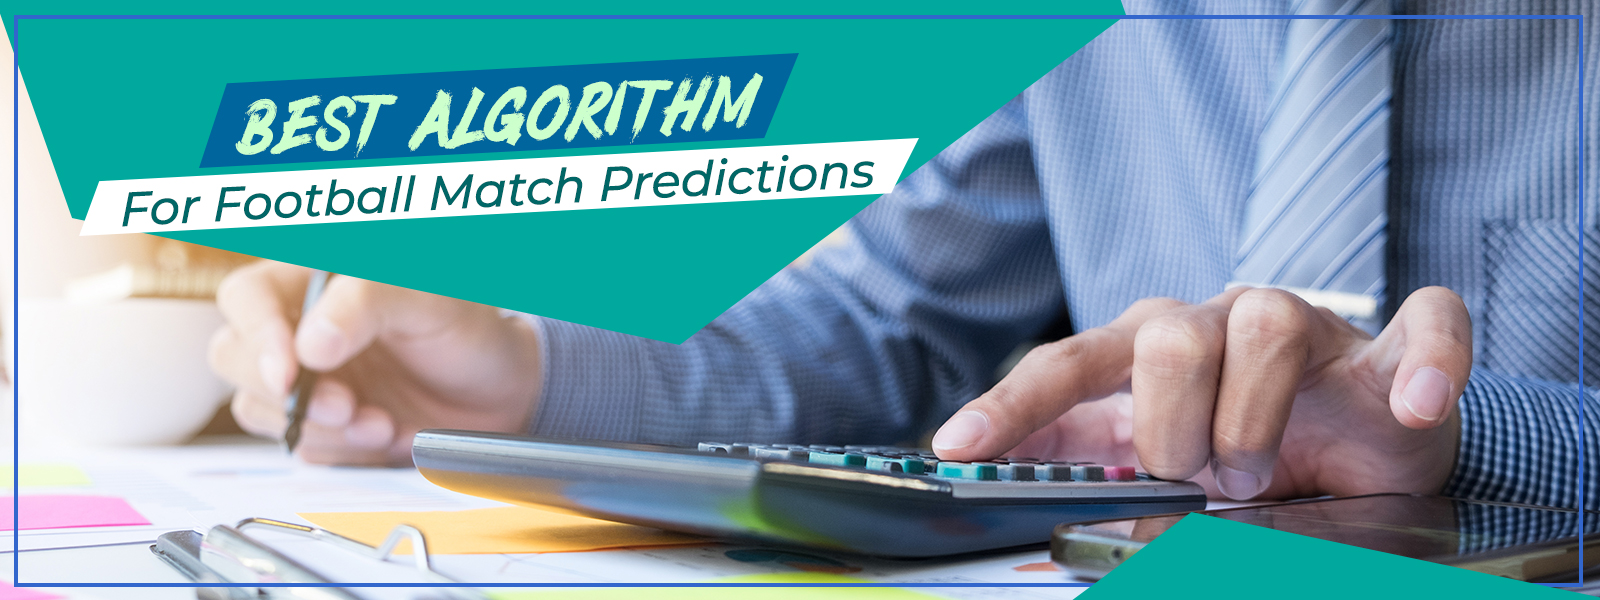 Best Algorithm For Football Match Predictions